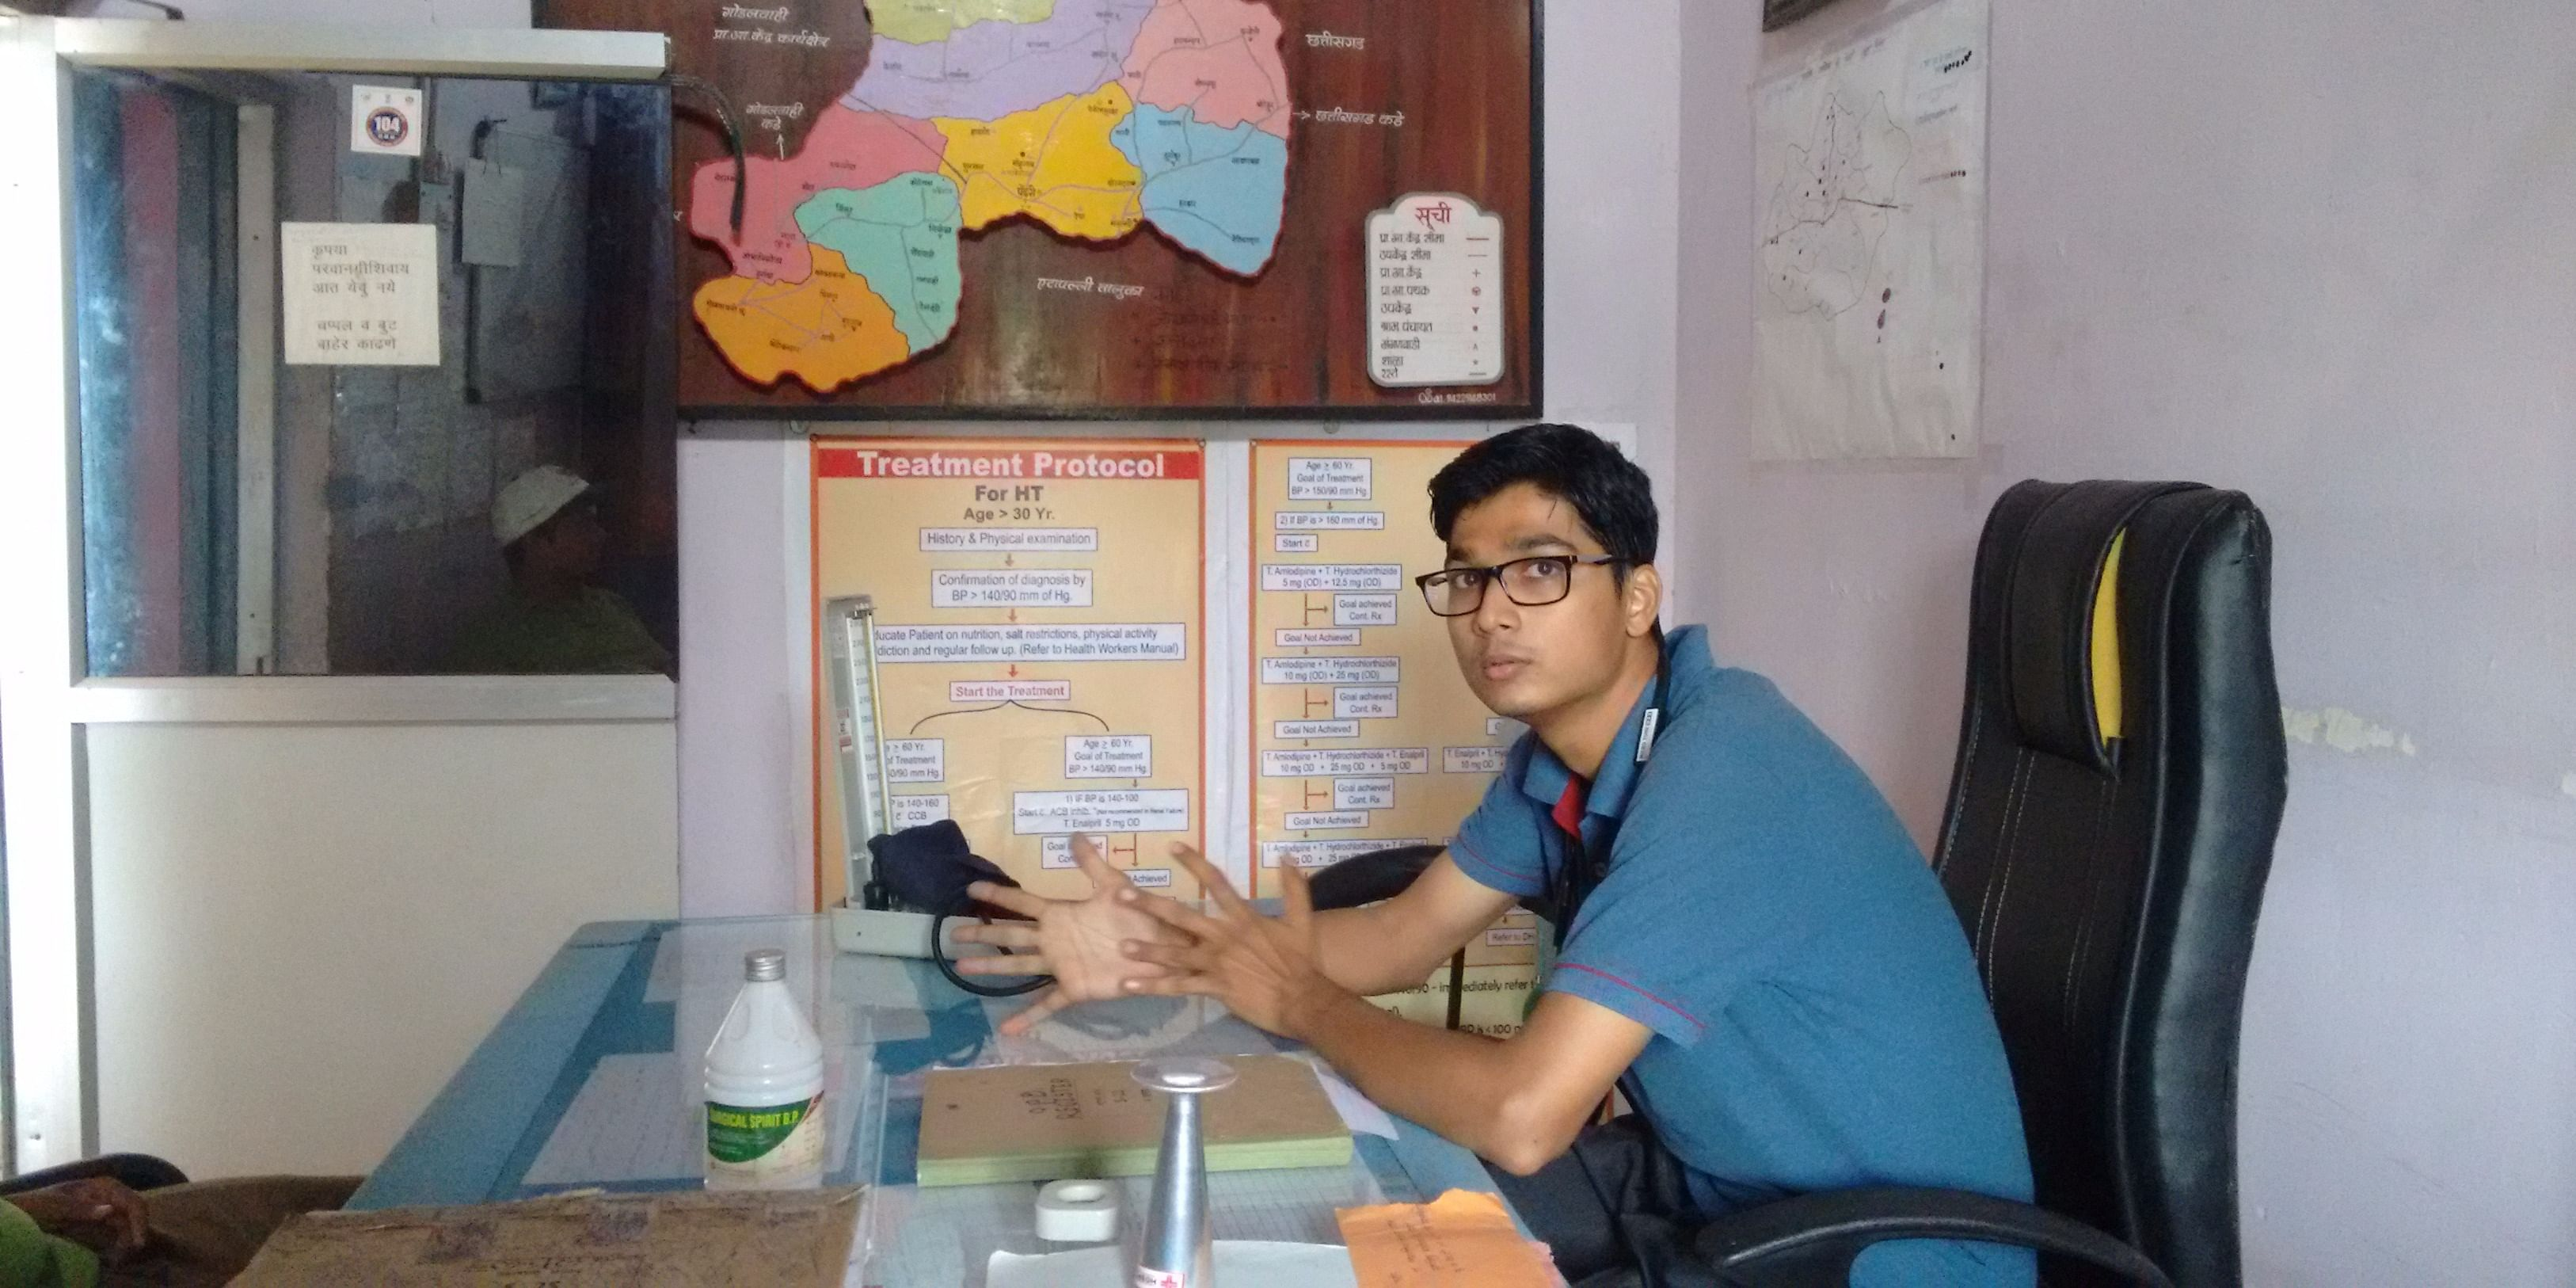 Dr. Prathamesh Hemnani in Primary Health Center, Pendhari, Gadchiroli